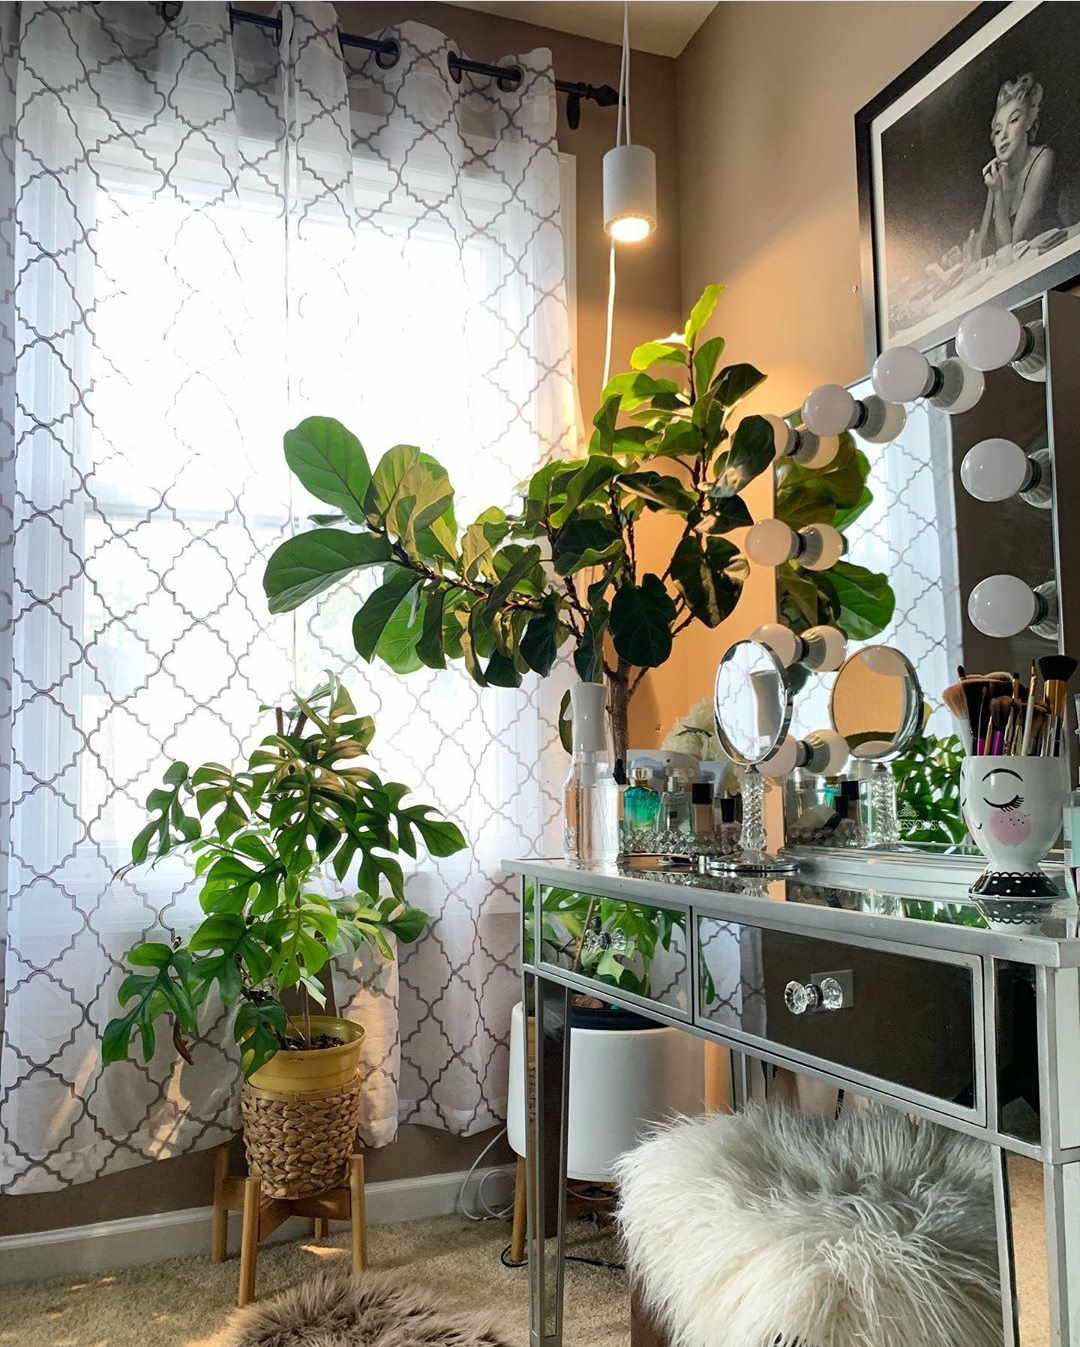 Small White Aspect™ Grow Light over a Fiddle Leaf Fig